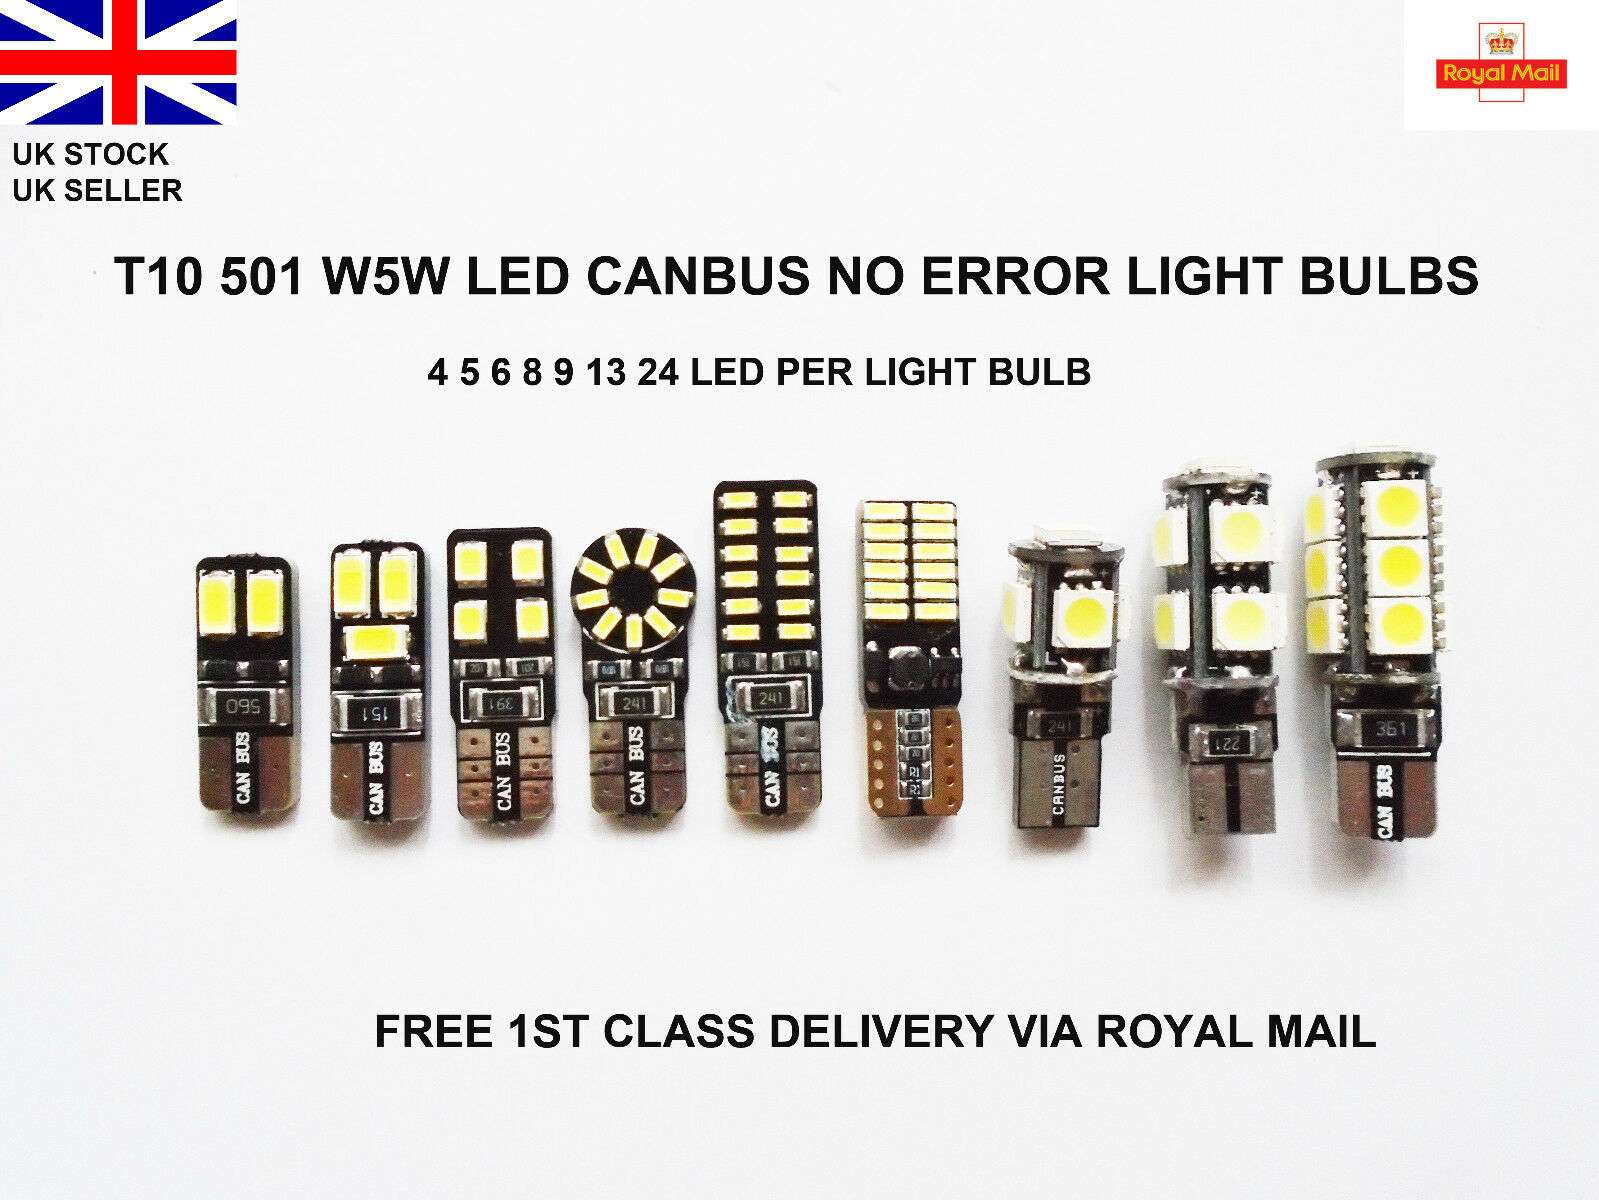 Car Parts - T10 CAR BULBS 4-24 LED ERROR FREE CANBUS SMD XENON WHITE W5W 501 SIDE LIGHT BULB